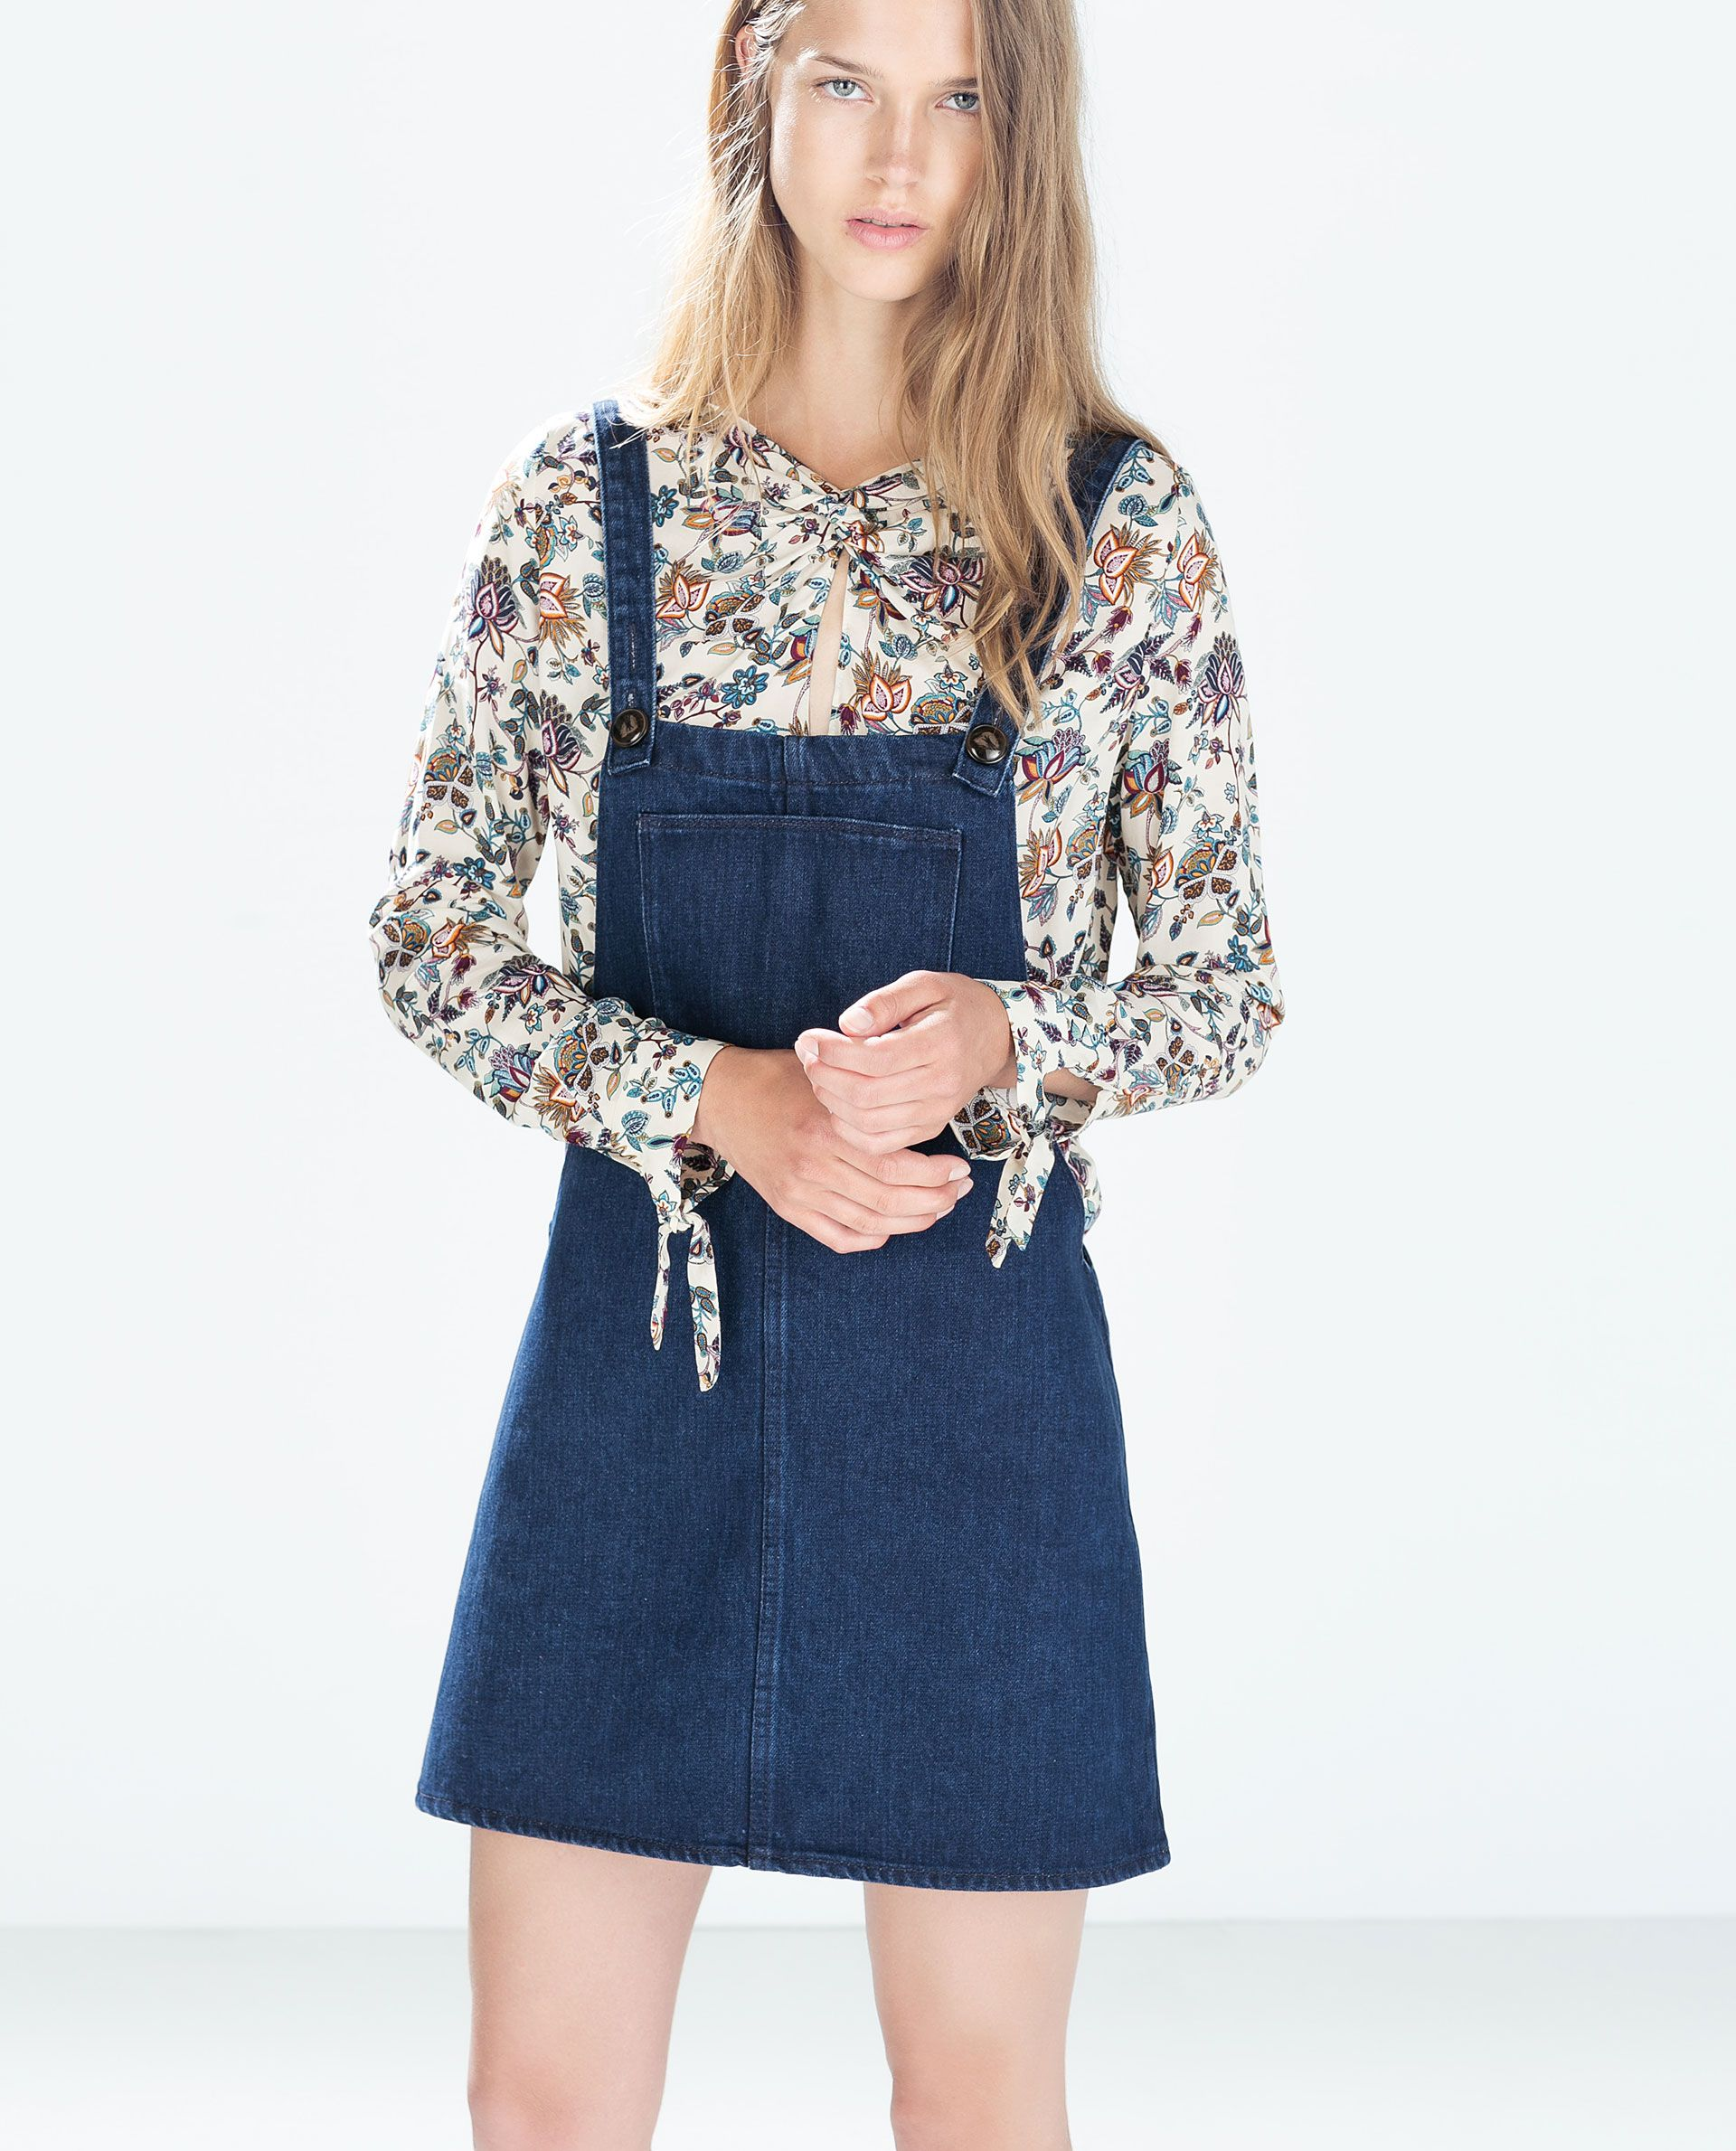 d3e463bc963 ZARA - TRF - PRINTED SHIRT WITH KNOT